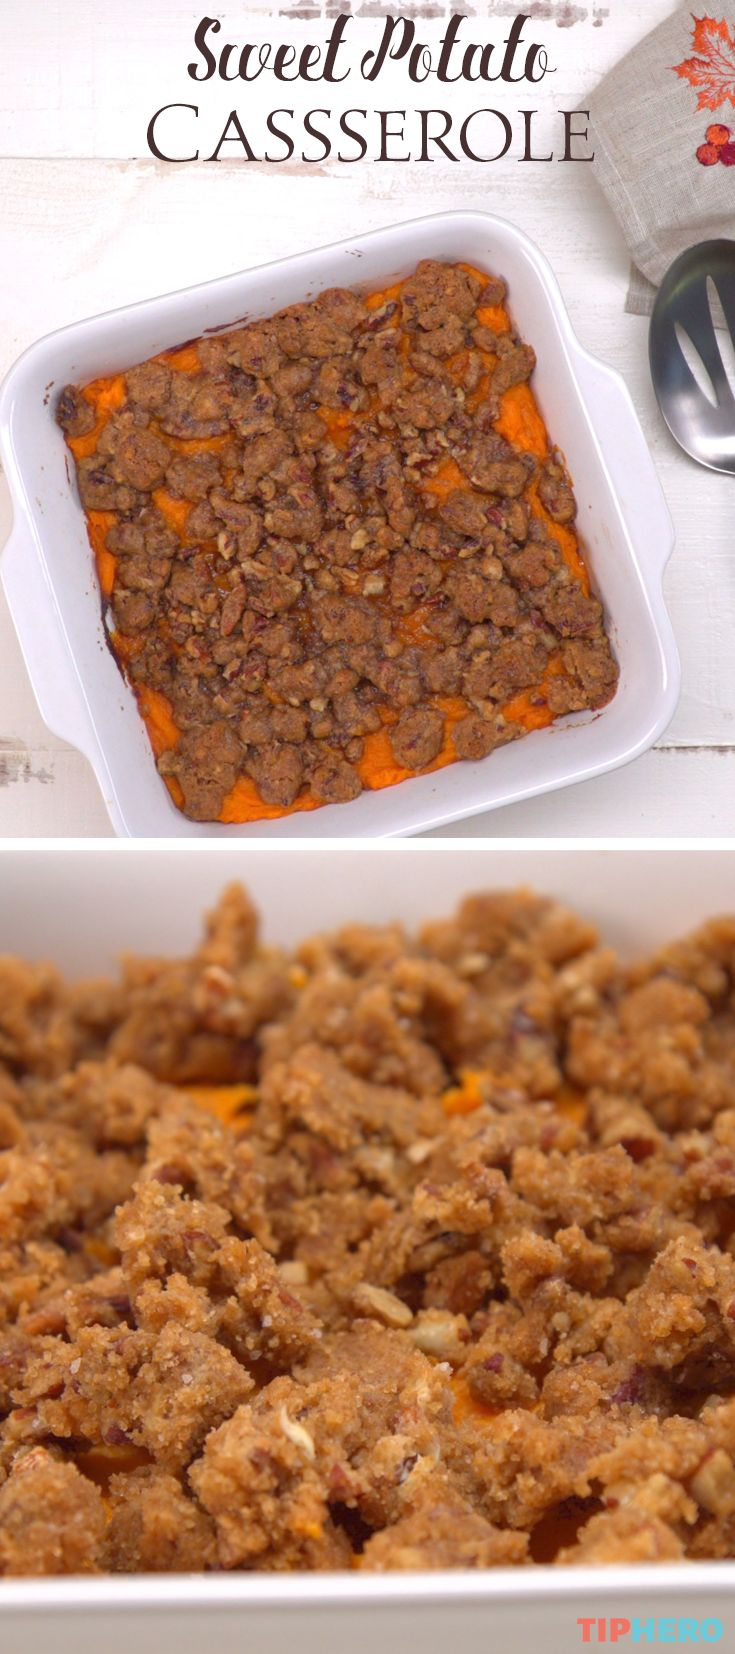 No time like the holidays to break out this sweet and delicious sweet potato casserole recipe. Loaded with pecans, brown sugar, and yes, butter,  this sweet potato side dish does not disappoint! It is just the right amount of sweet and crunch. Click for the video and give it a try!